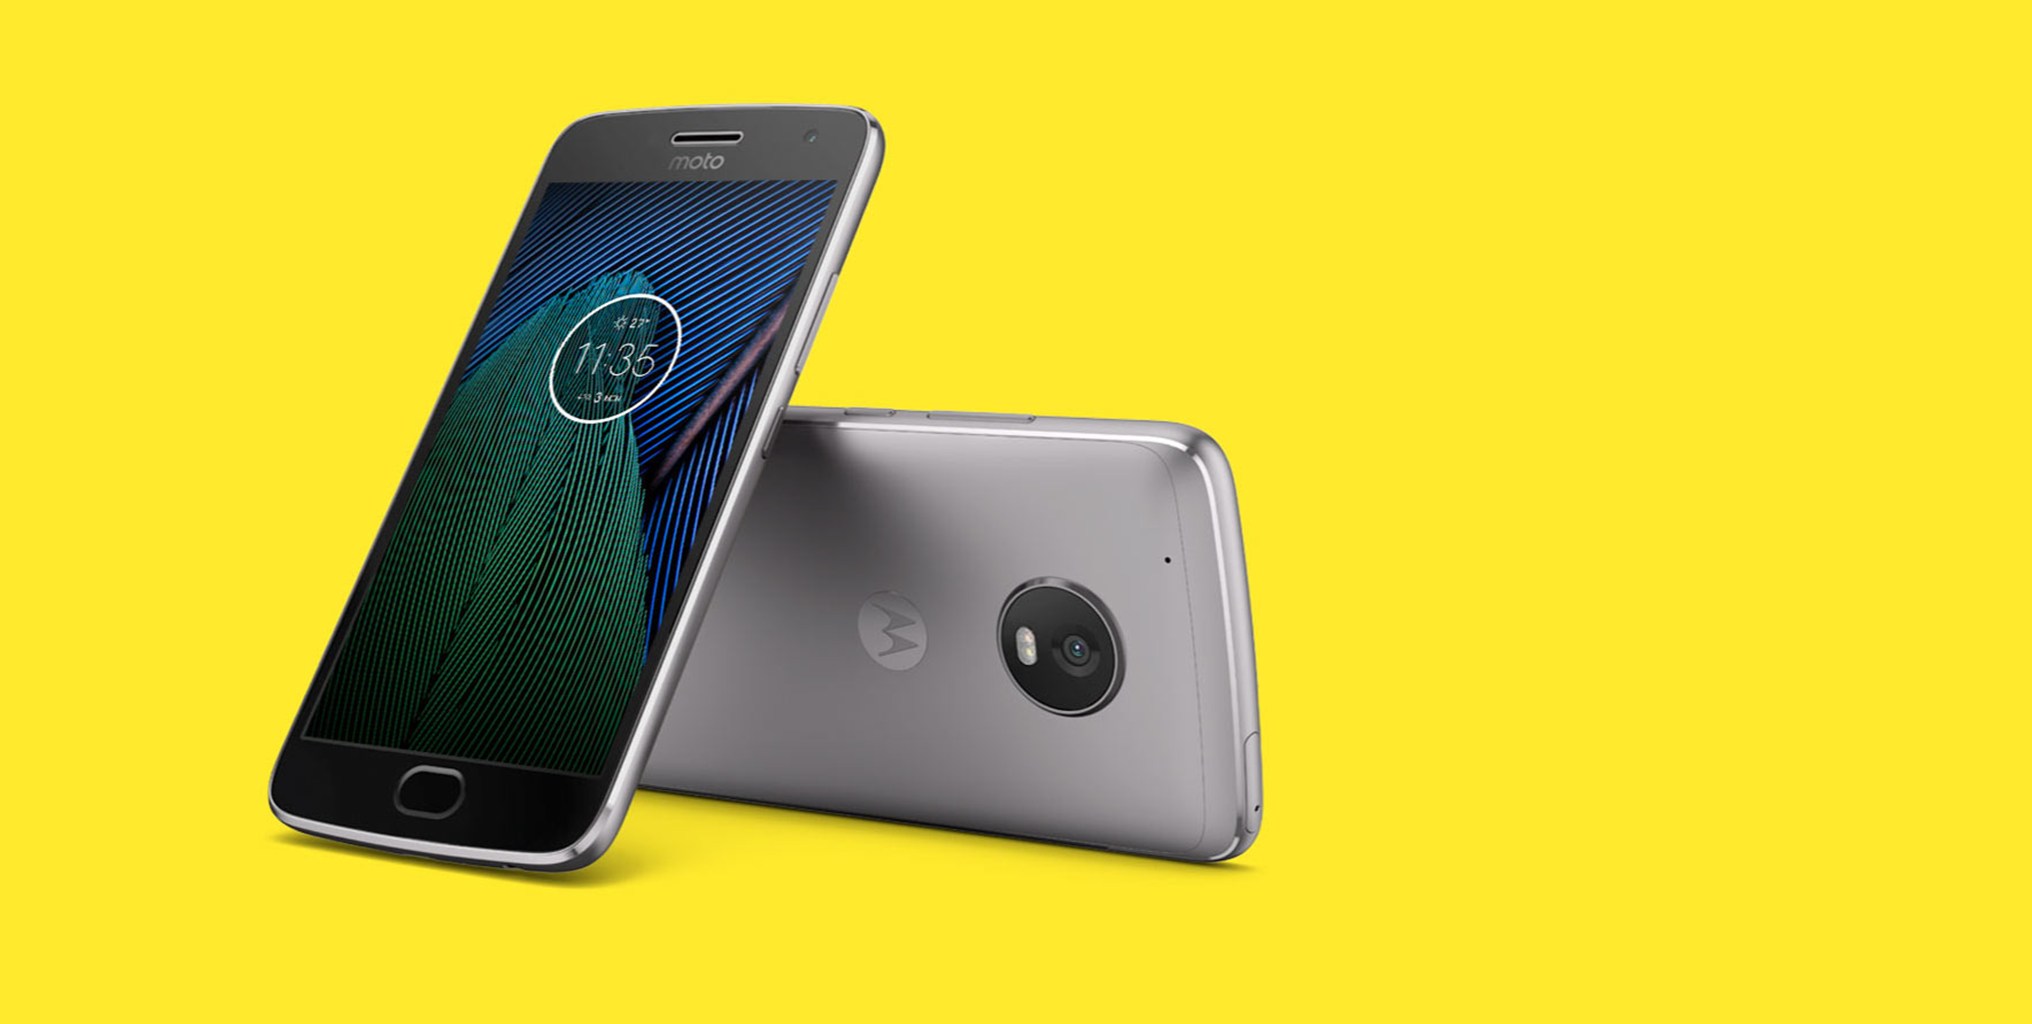 Best Affordable Android Smartphones You Can Buy March 2017 9to5google